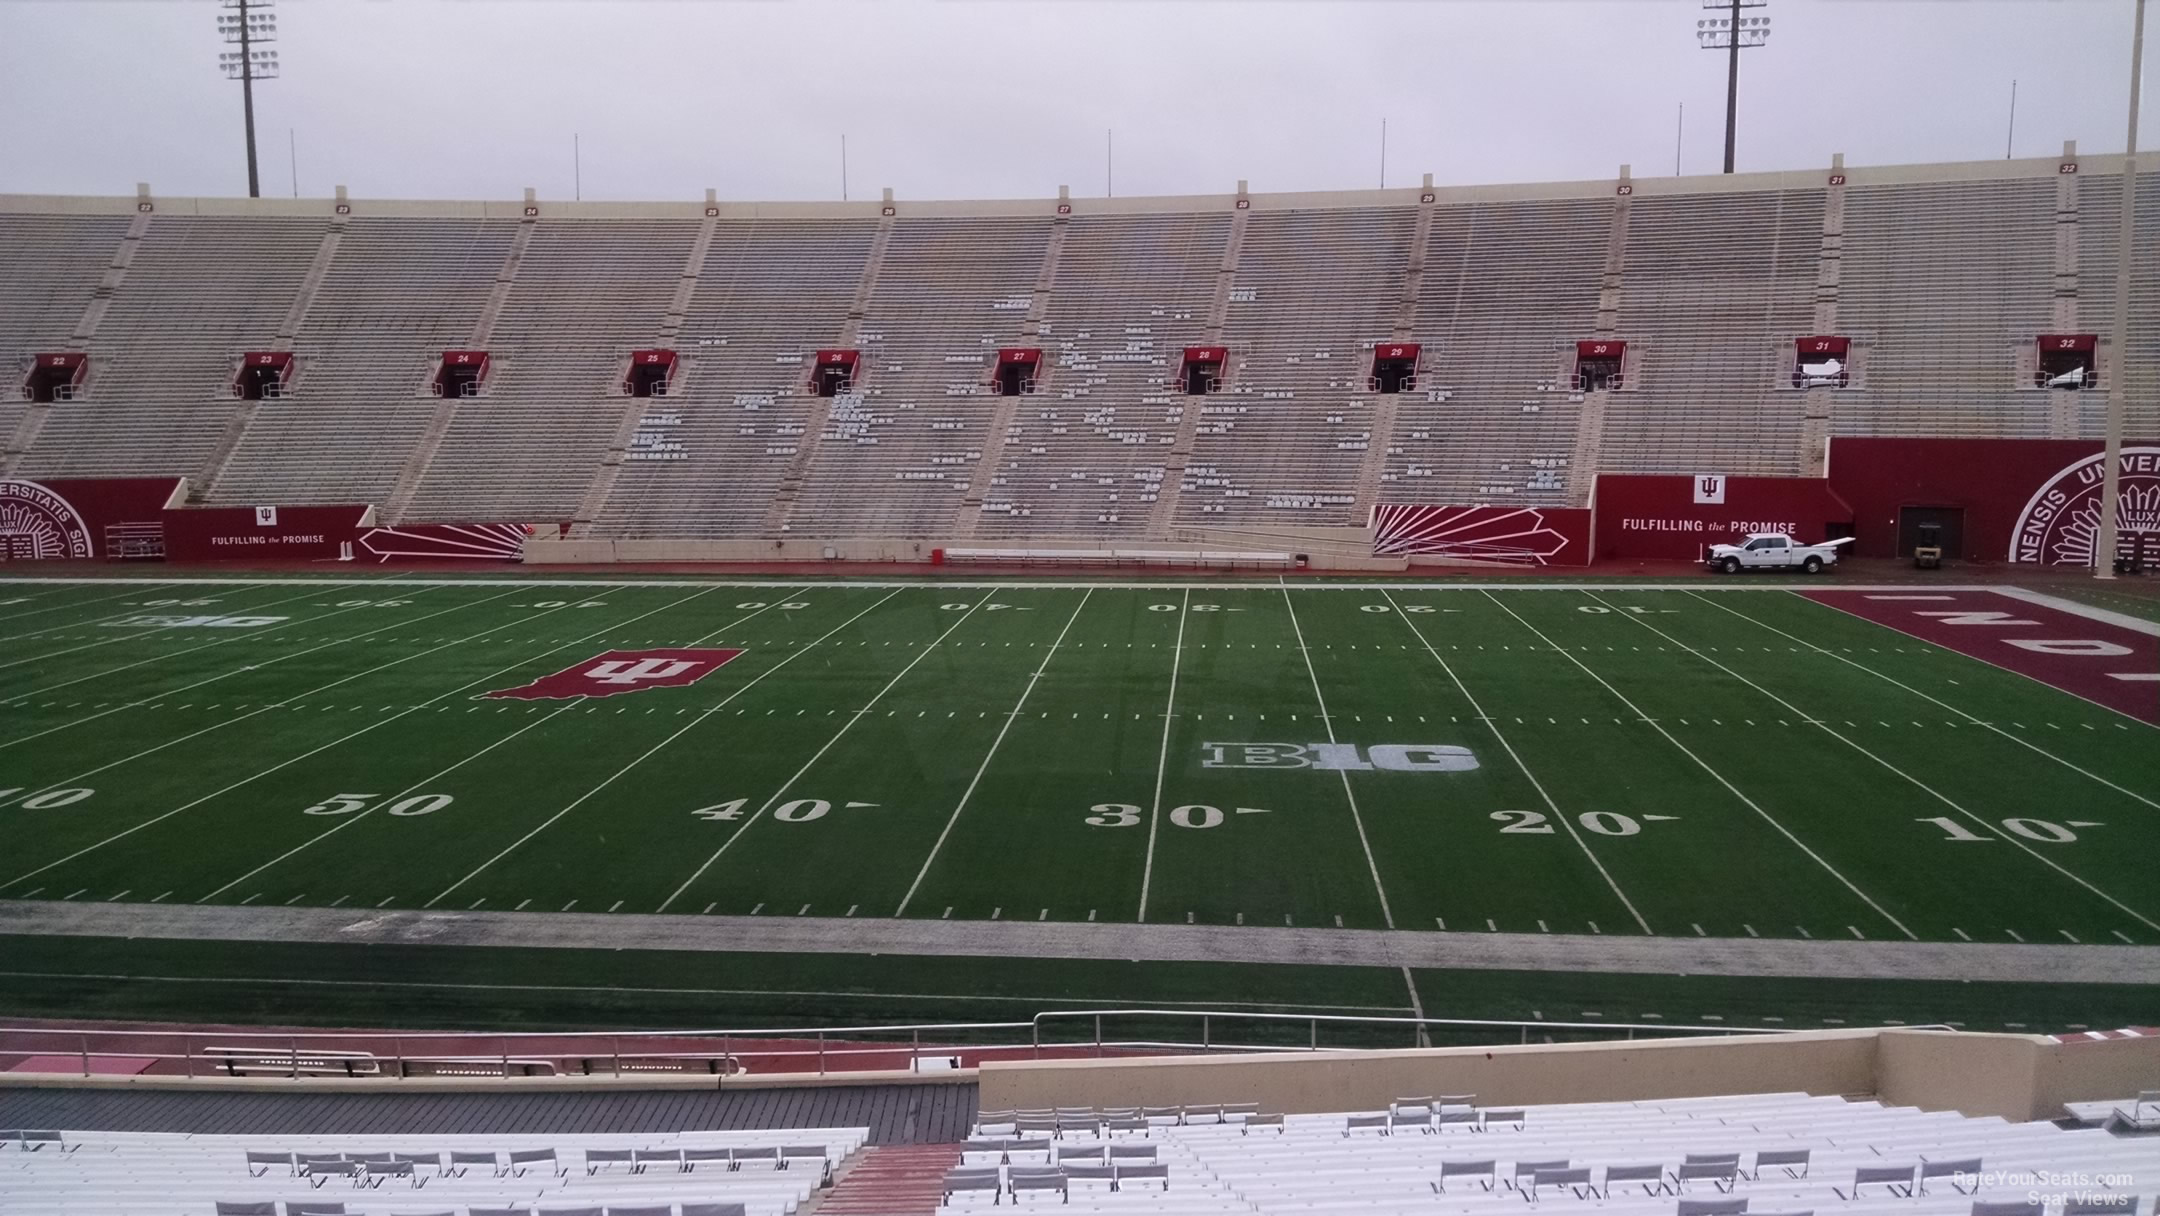 Seat View for Memorial Stadium - IN Section 5, Row 30